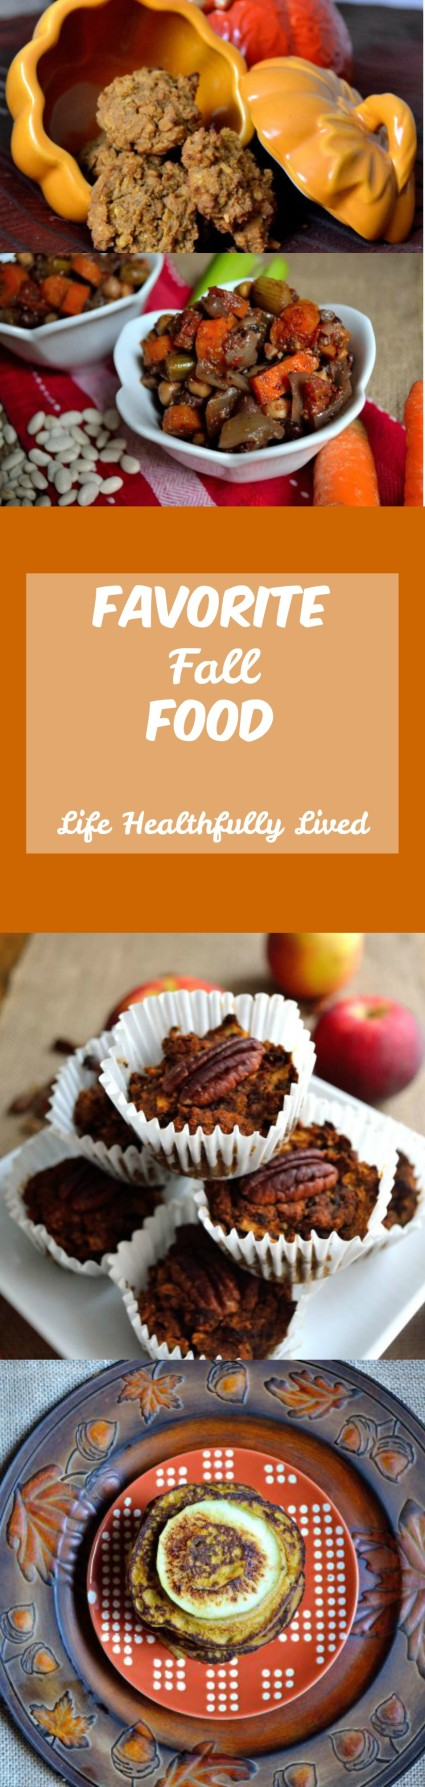 3 (Food) Things I'm Excited About For Fall | Life Healthfully Lived